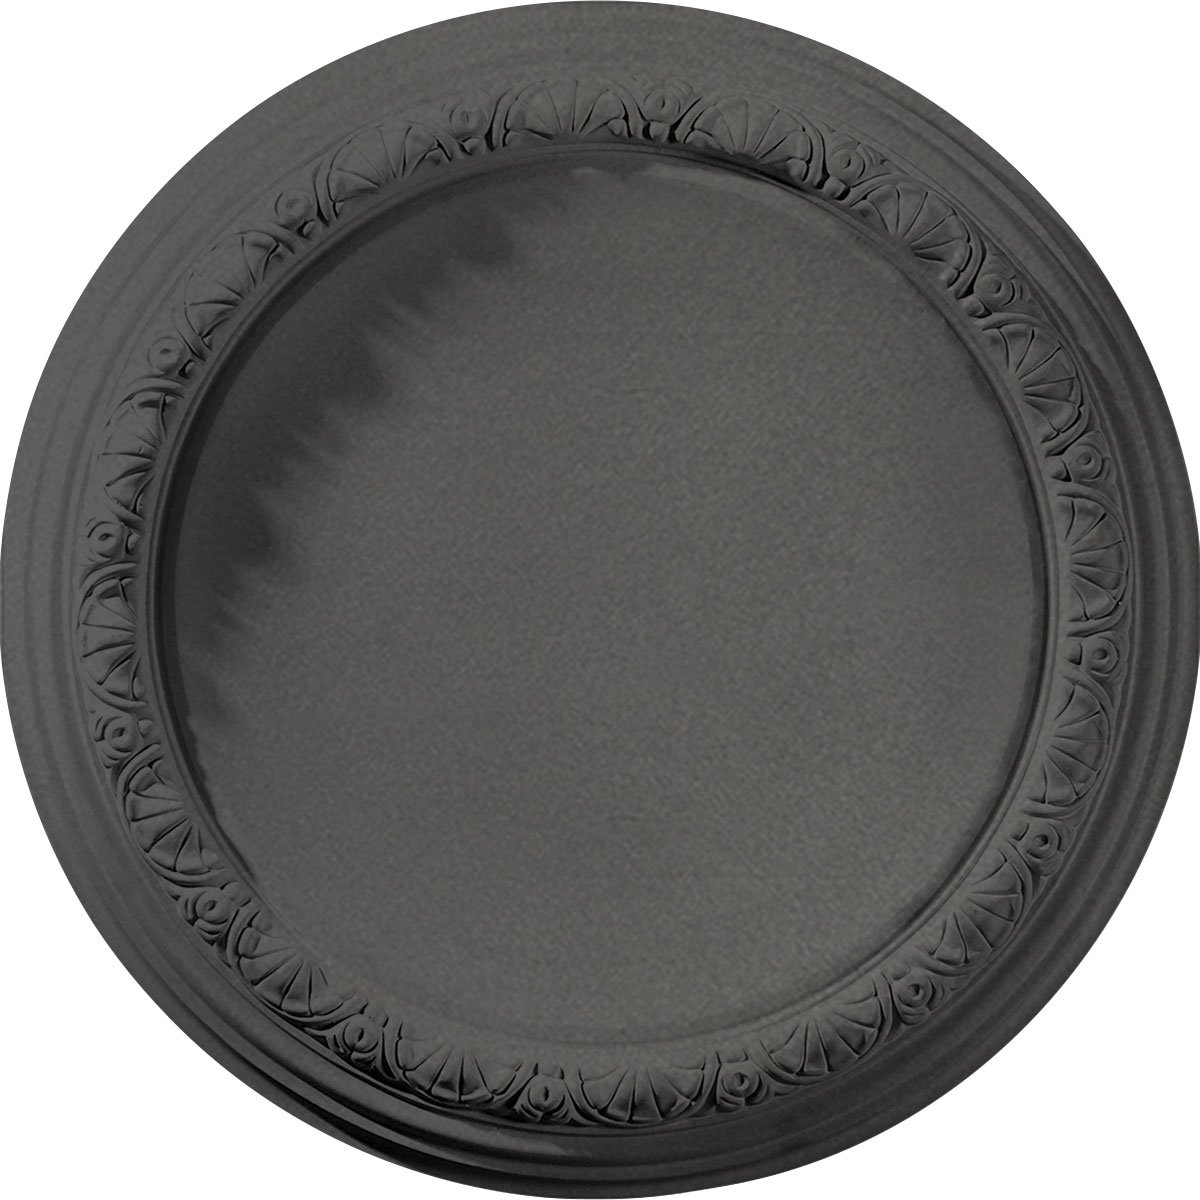 Ekena Millwork CM19CASGS Carlsbad Ceiling Medallion fits Canopies up to 14 1/4'', Steel Gray